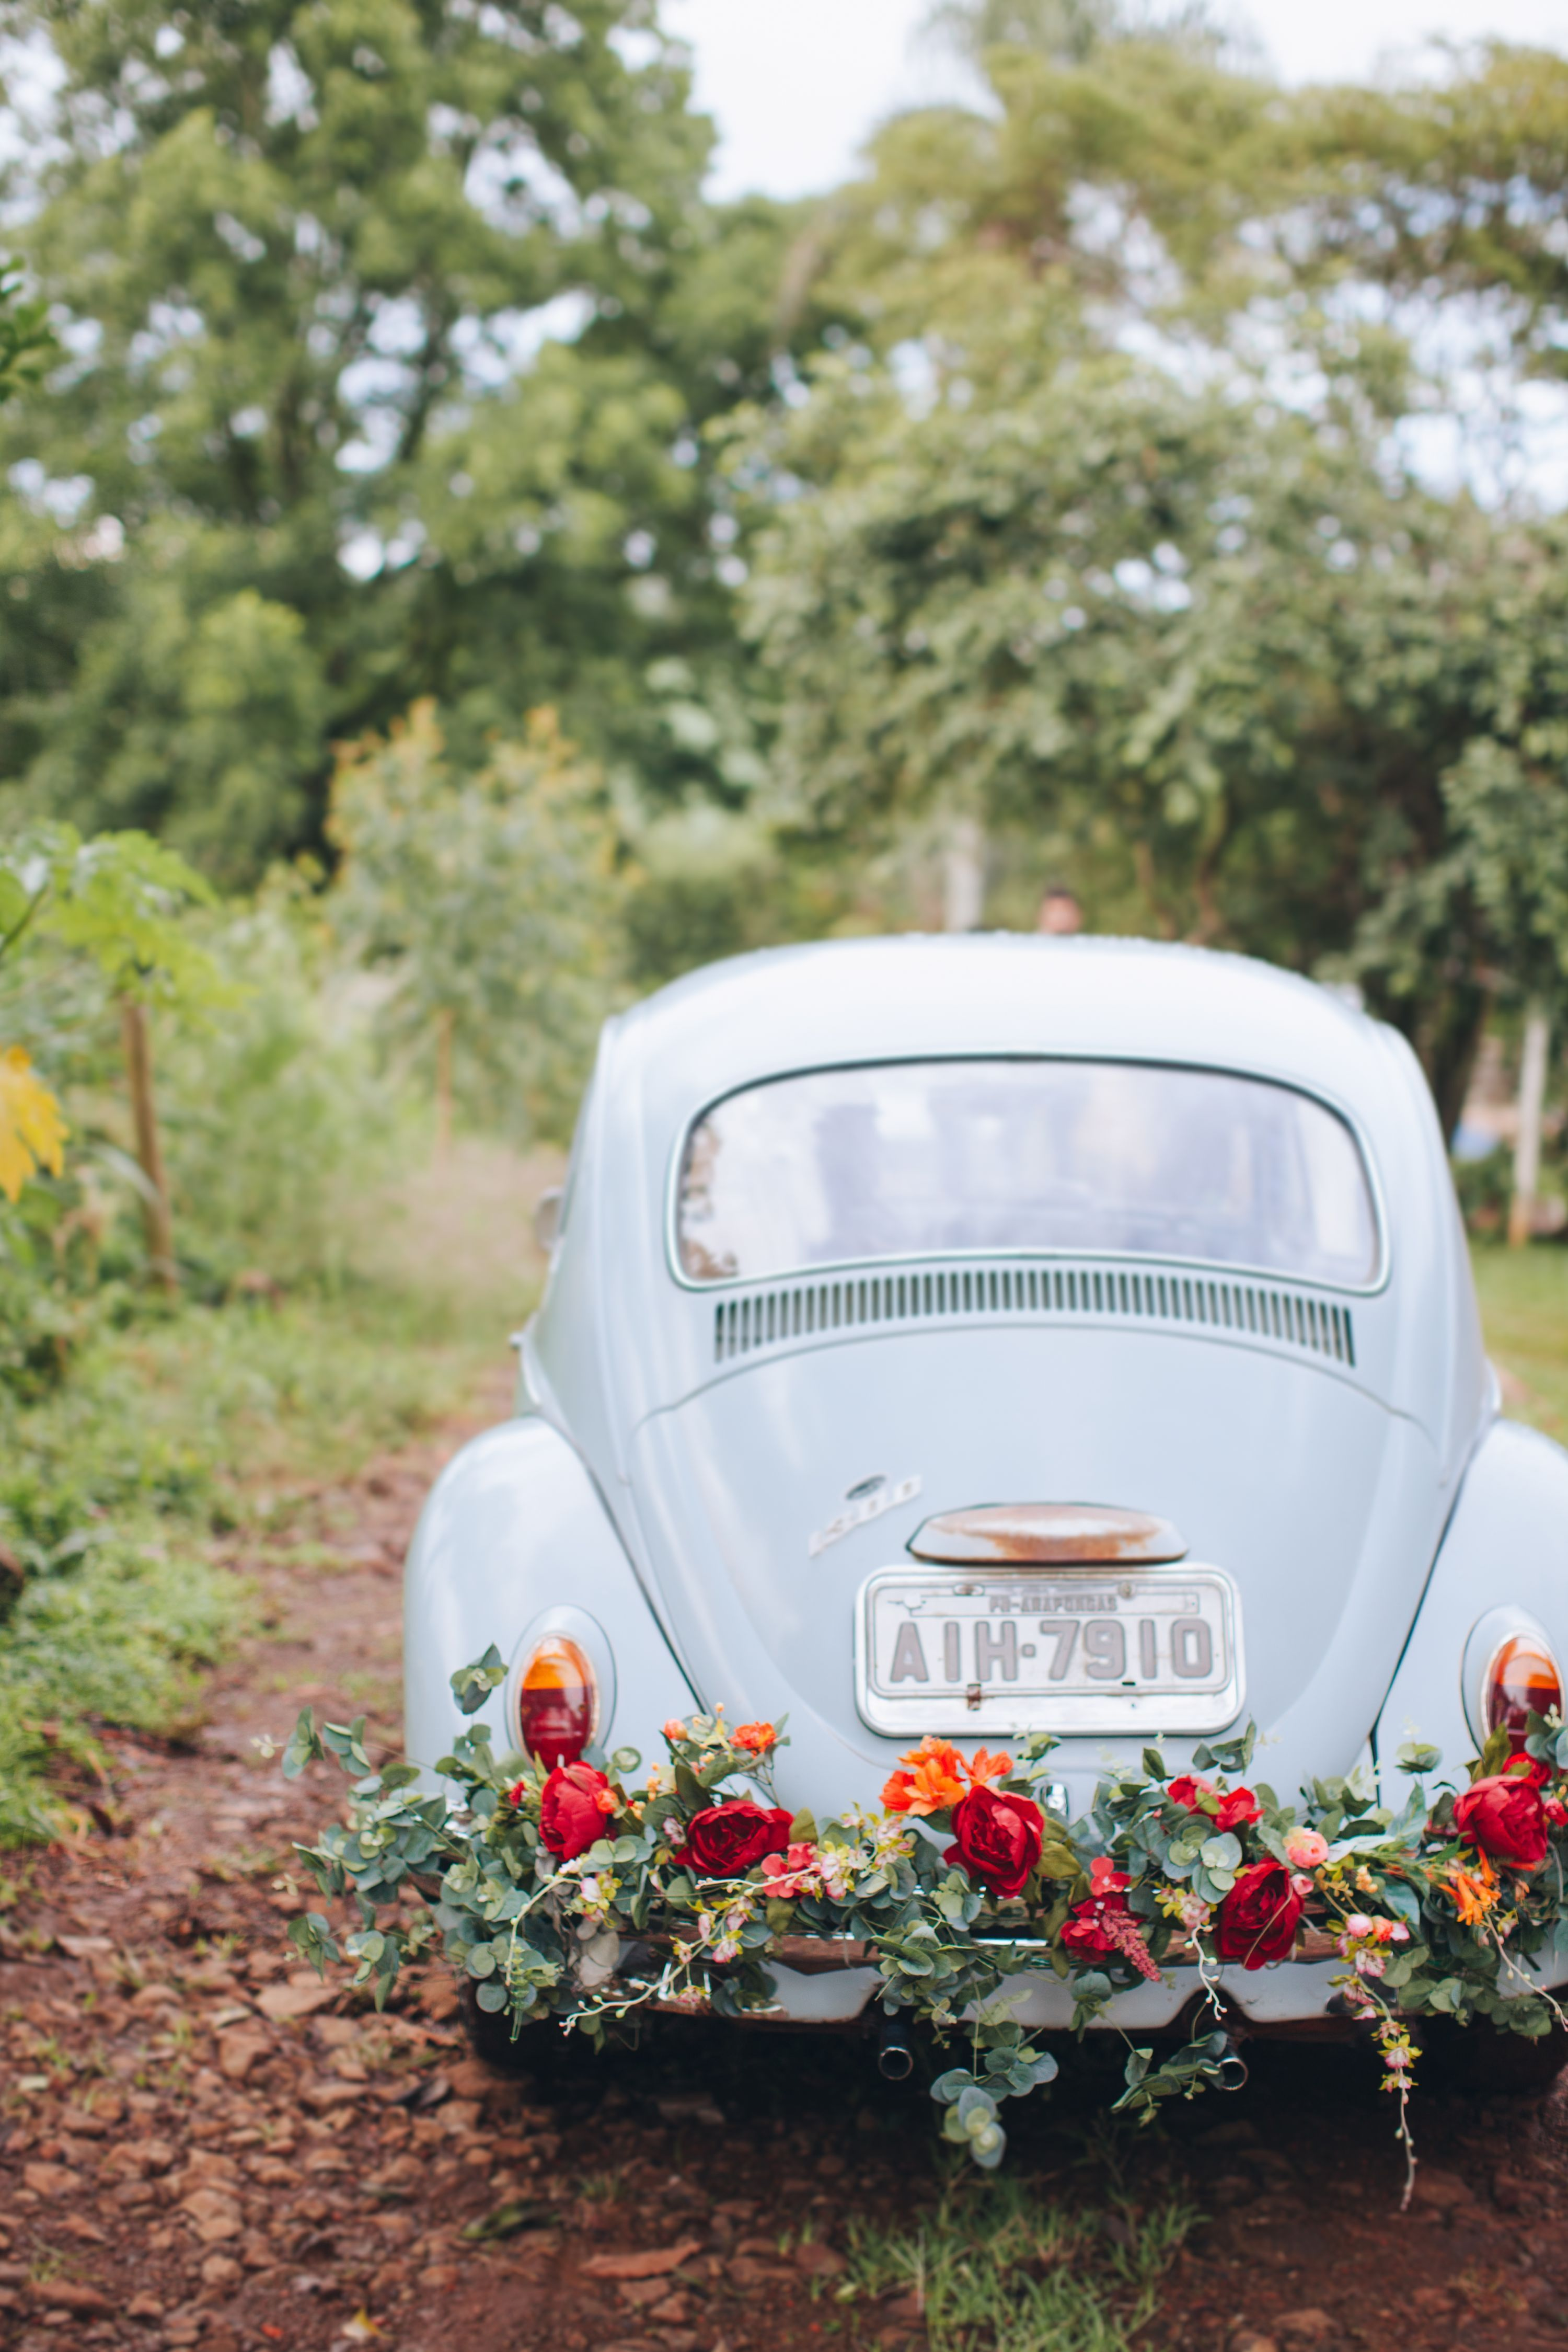 Wedding car flower decoration images  Ride off into the sunset on the cutest getaway car Dawning a